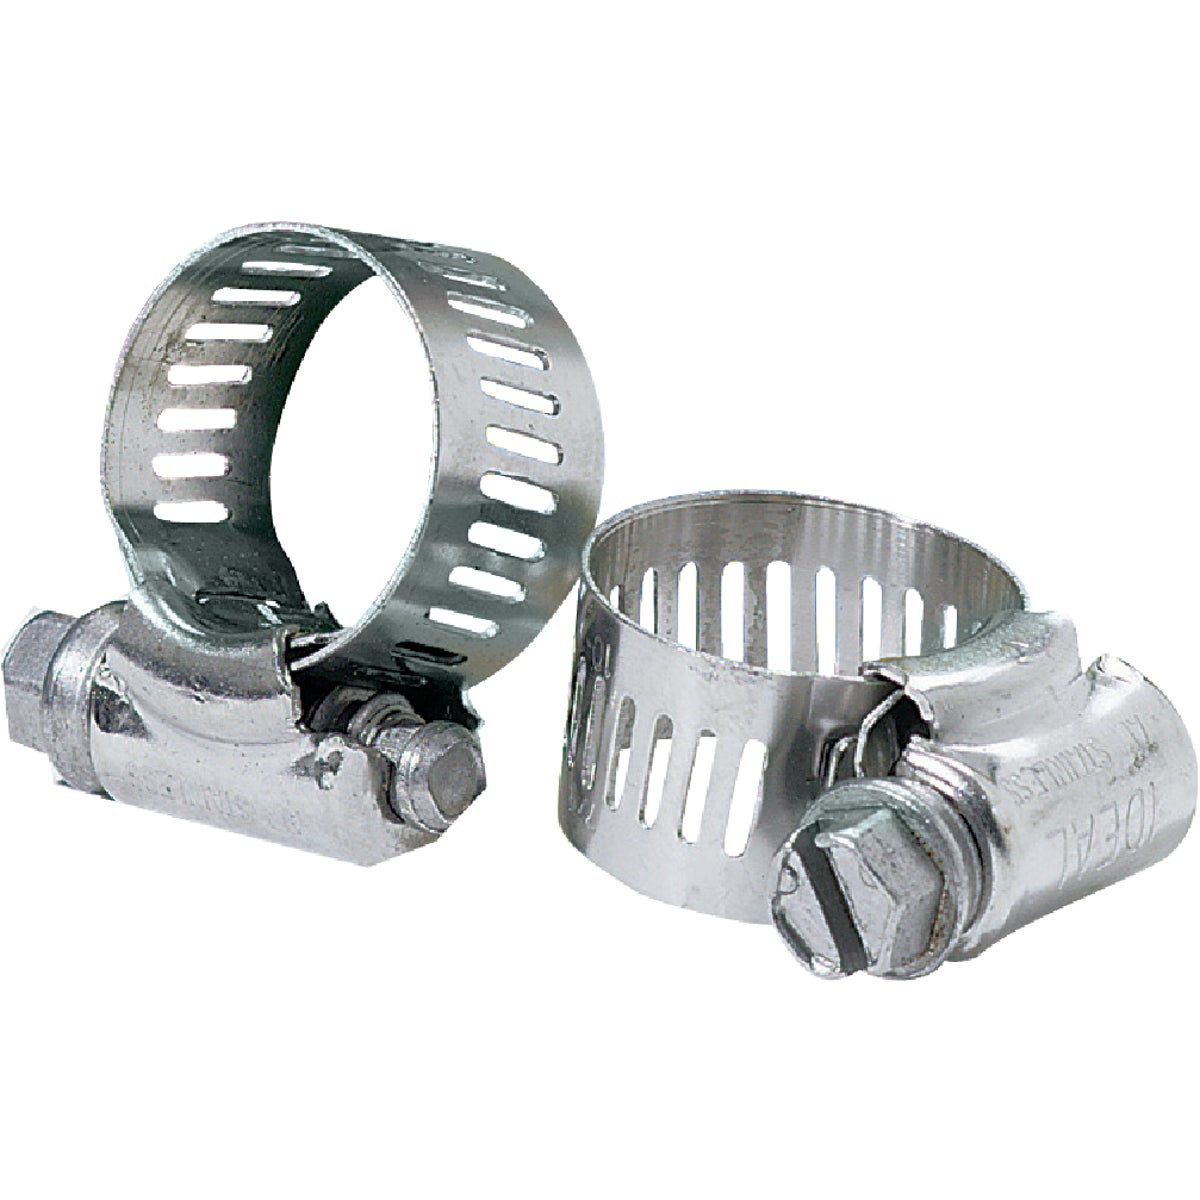 "11-16"" TO 1-1/2"" CLAMP"